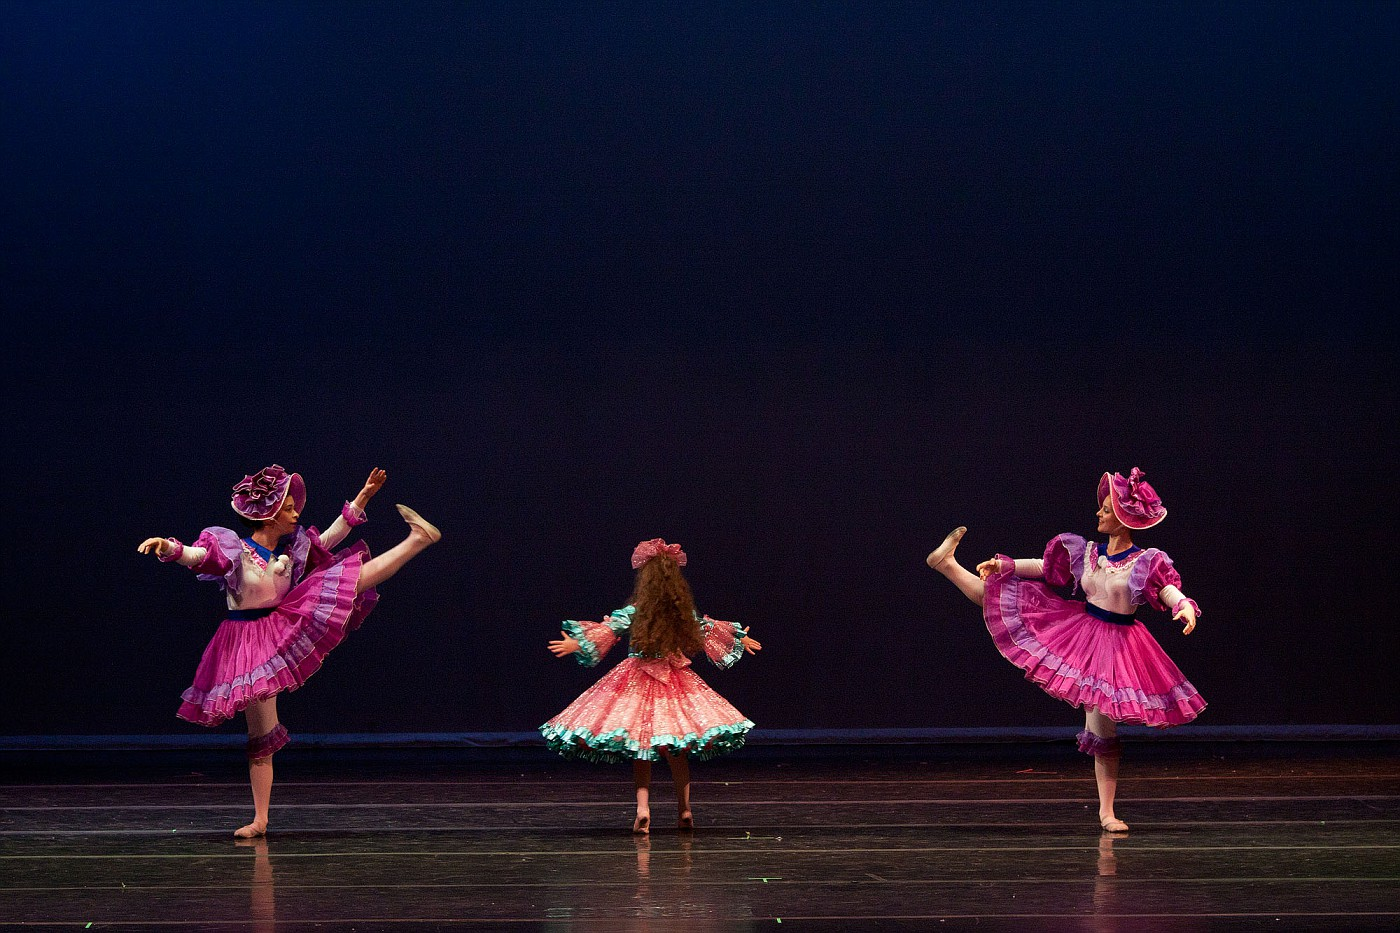 portrait-photography-children-ballet-20100617_0035.jpg